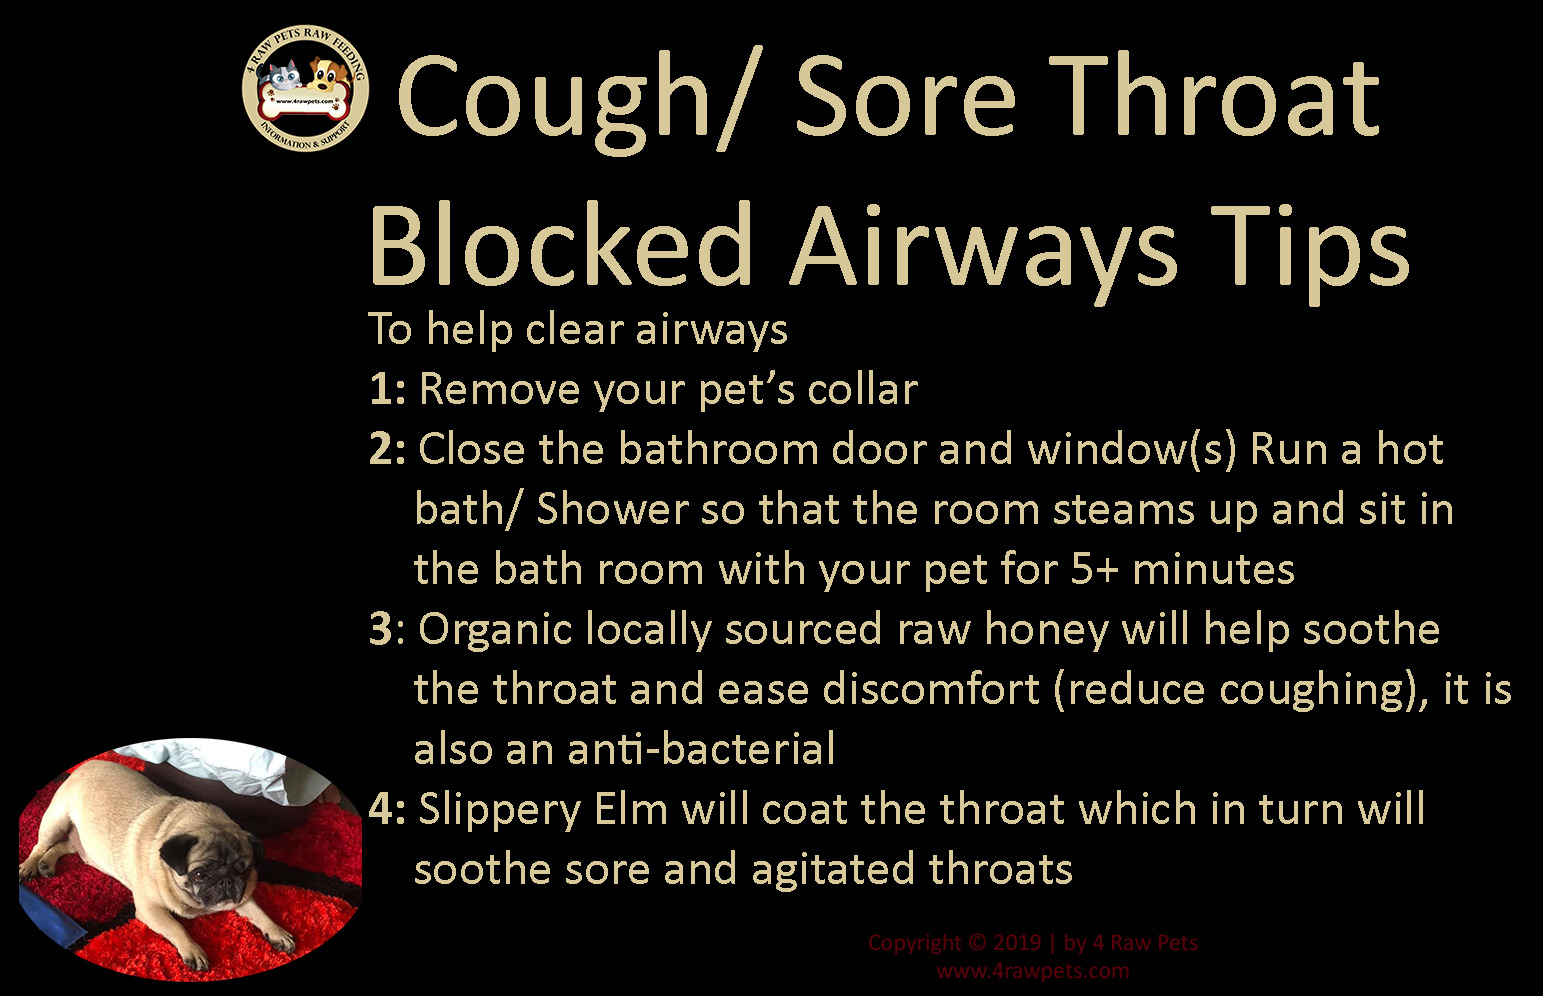 Cough-sore-throat-blocked-airways-tips